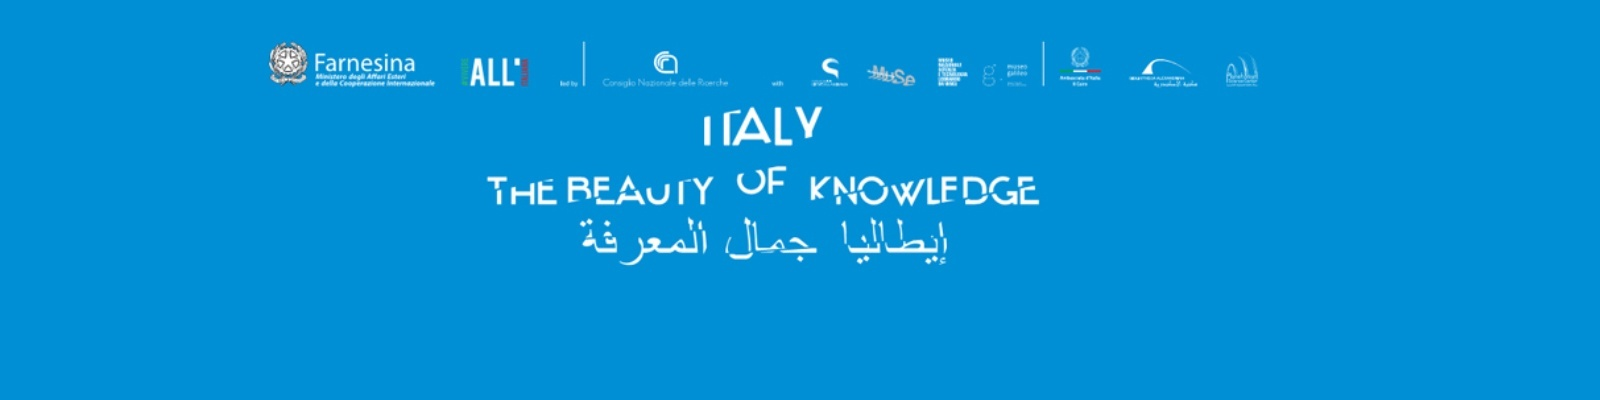 Italy: The Beauty of Knowledge Exhibition